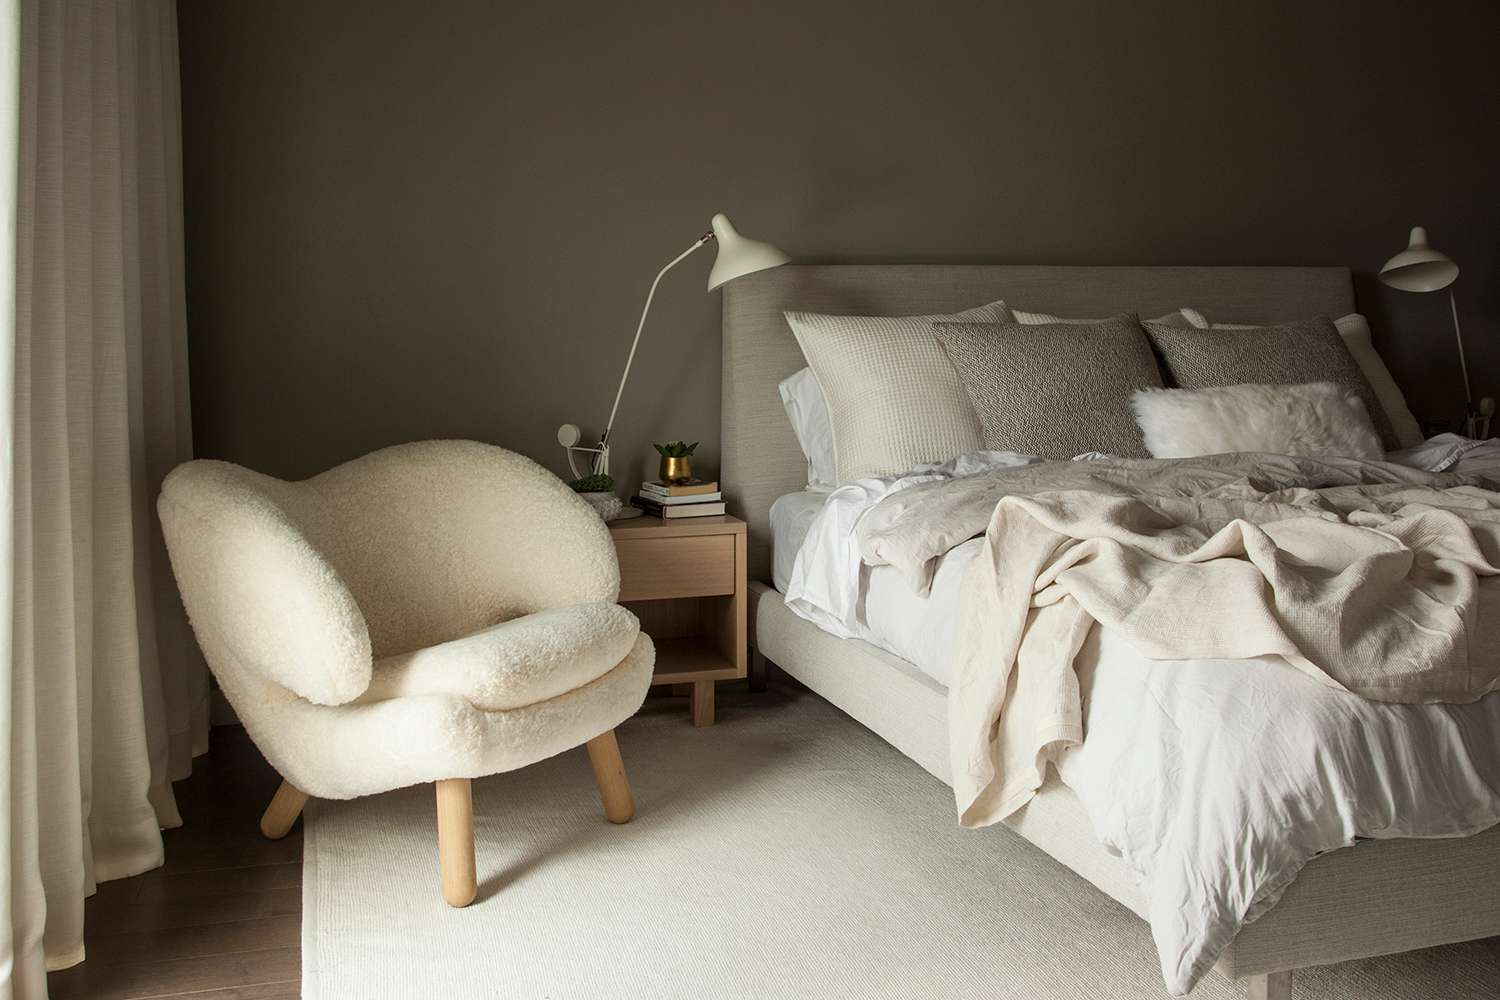 Cozy Bedroom Ideas To Make A Space More Homey